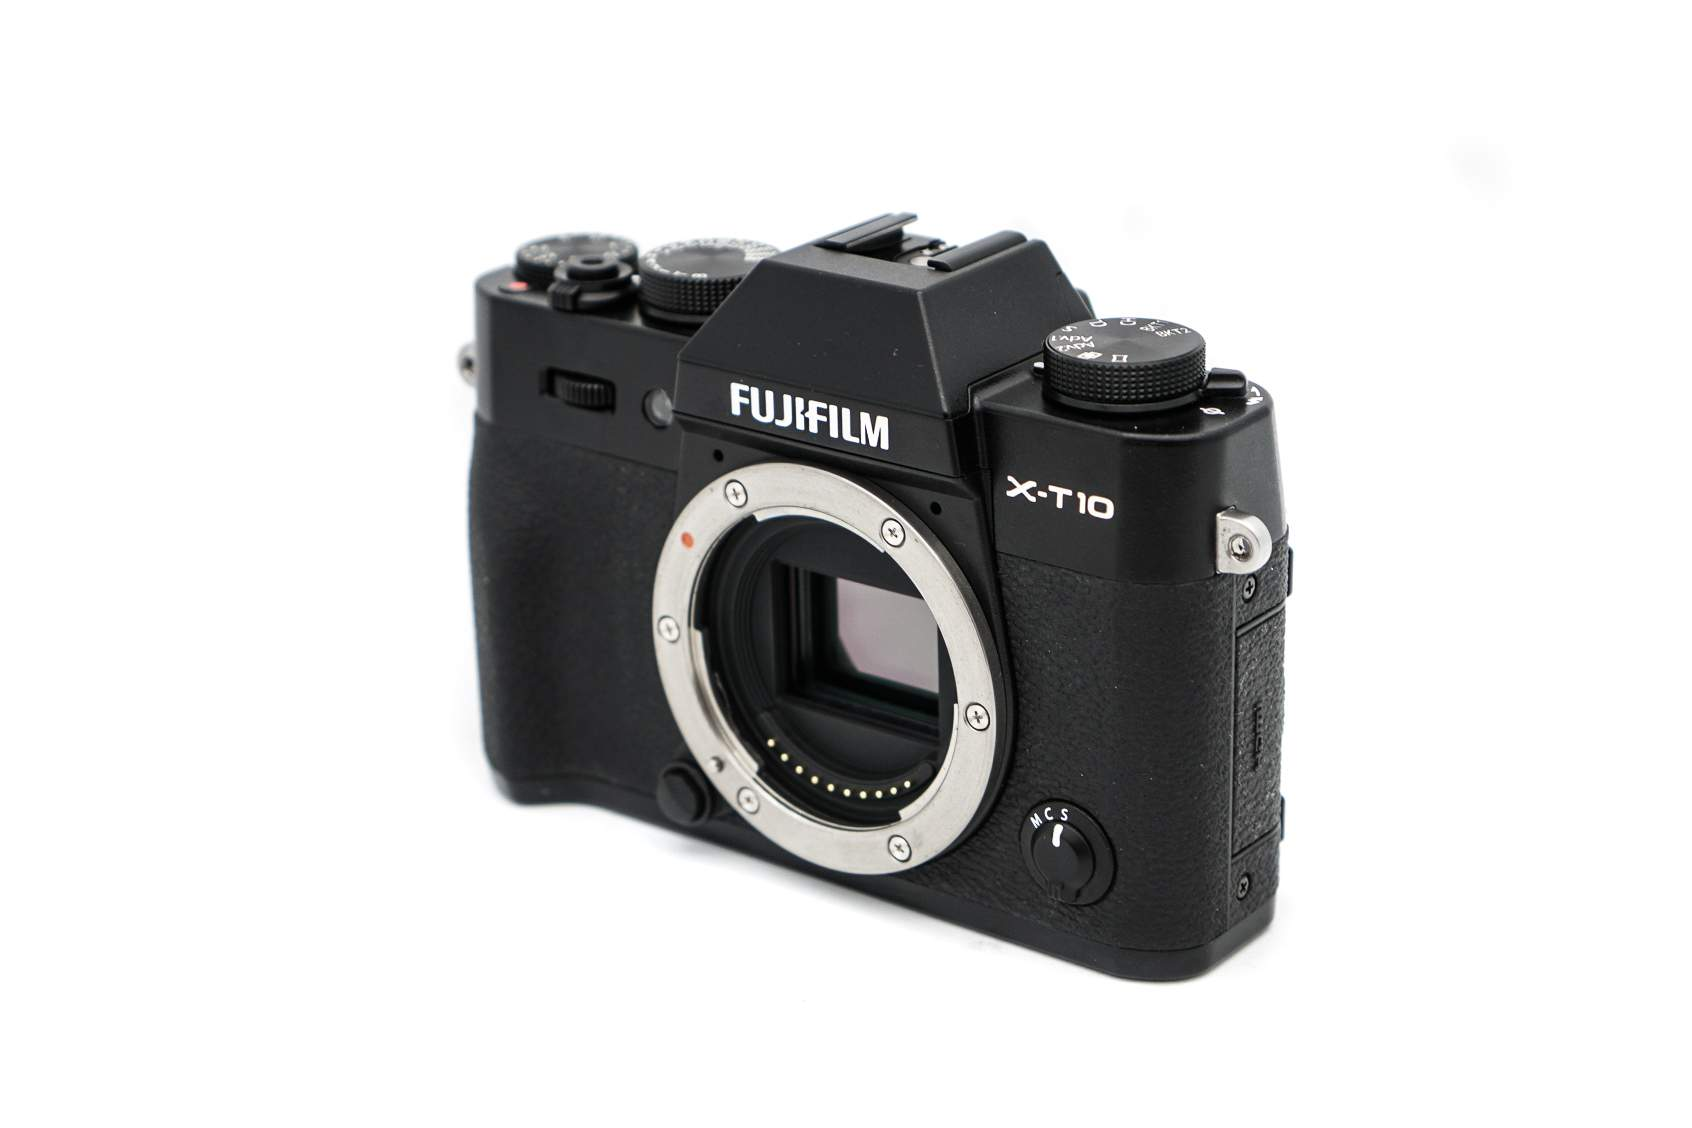 Fujifilm X T10 Body Only Rent From 25 Month Kit 16 50mm F 35 56 Ois Ii Black Rental Products Mirrorless Cameras Previous